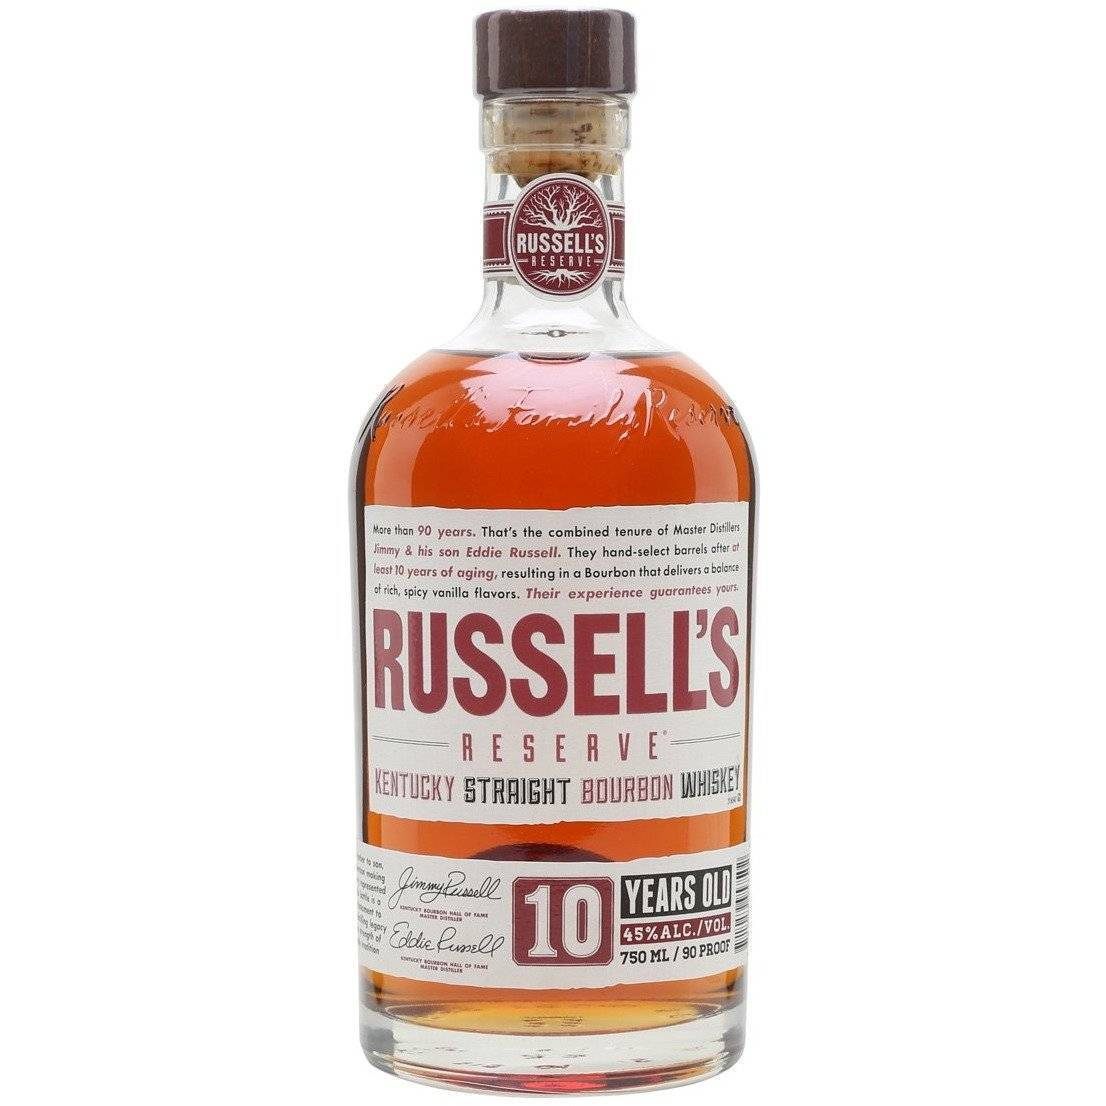 Russell's Reserve 10 Year Old Bourbon 700mL - Uptown Liquor